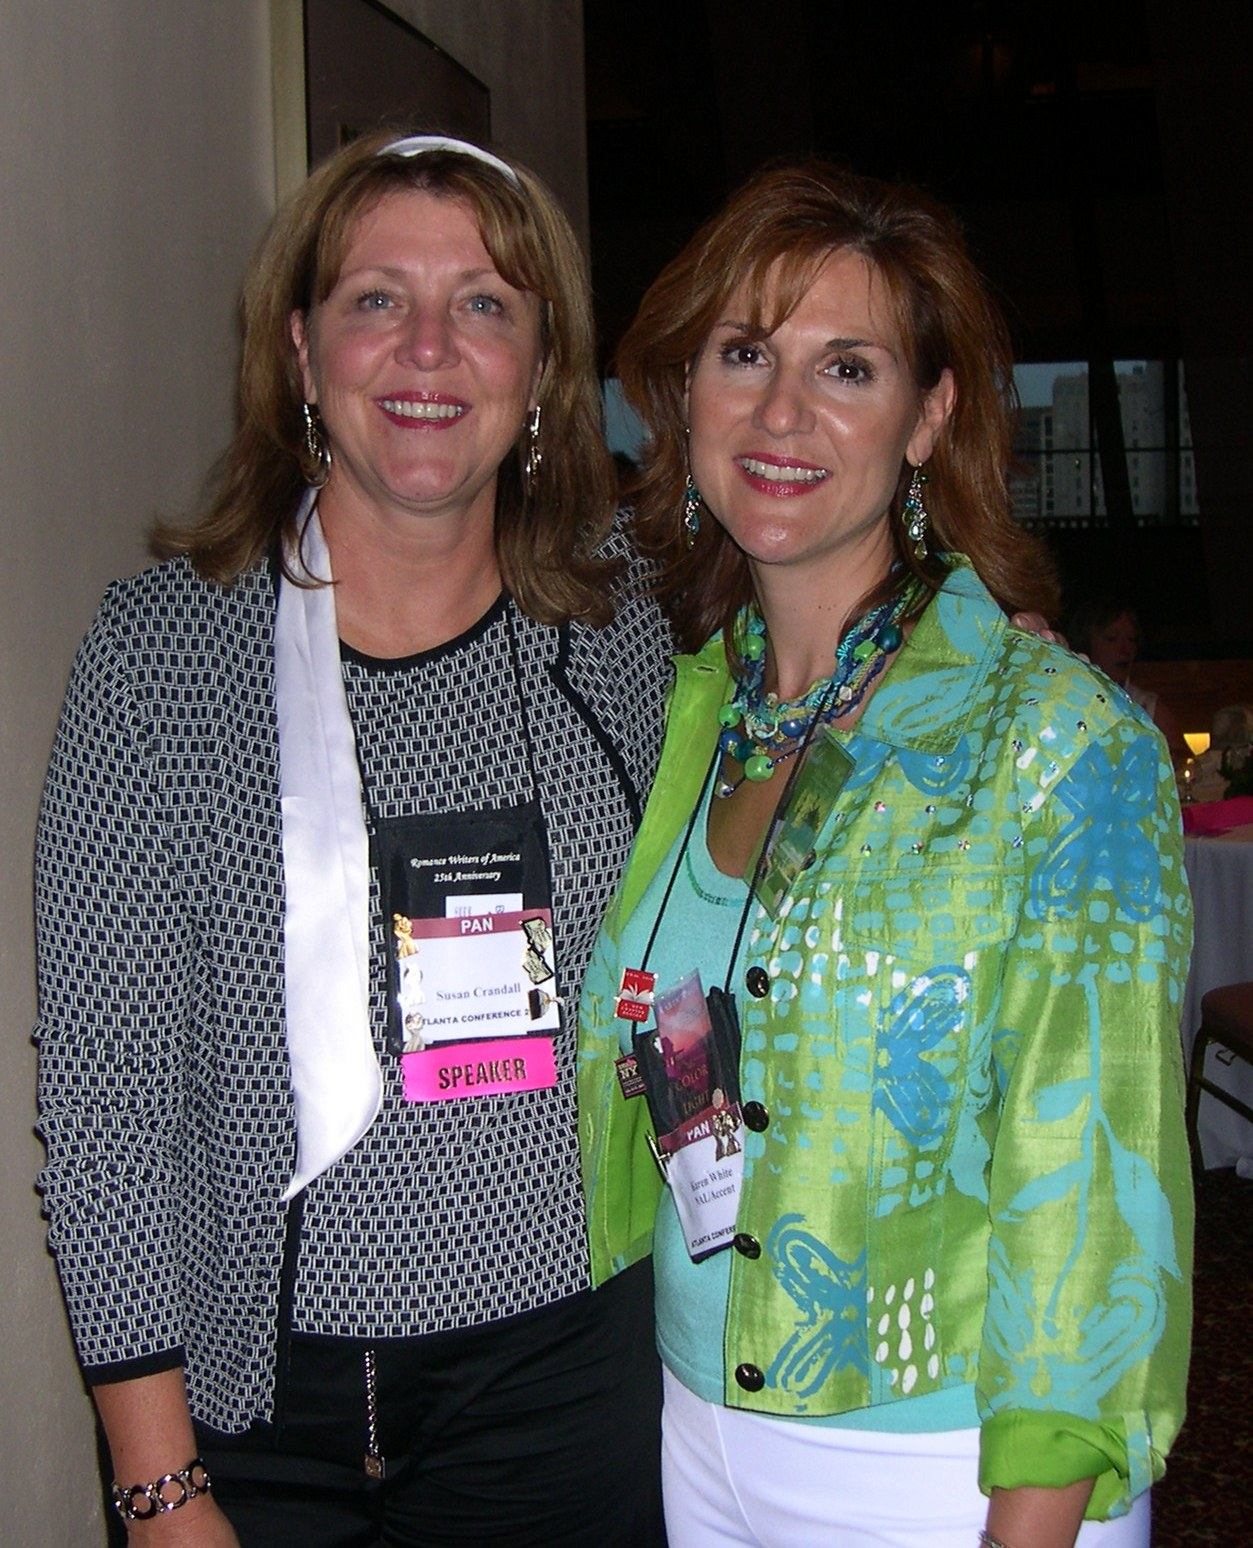 Susan Crandall and Karen White